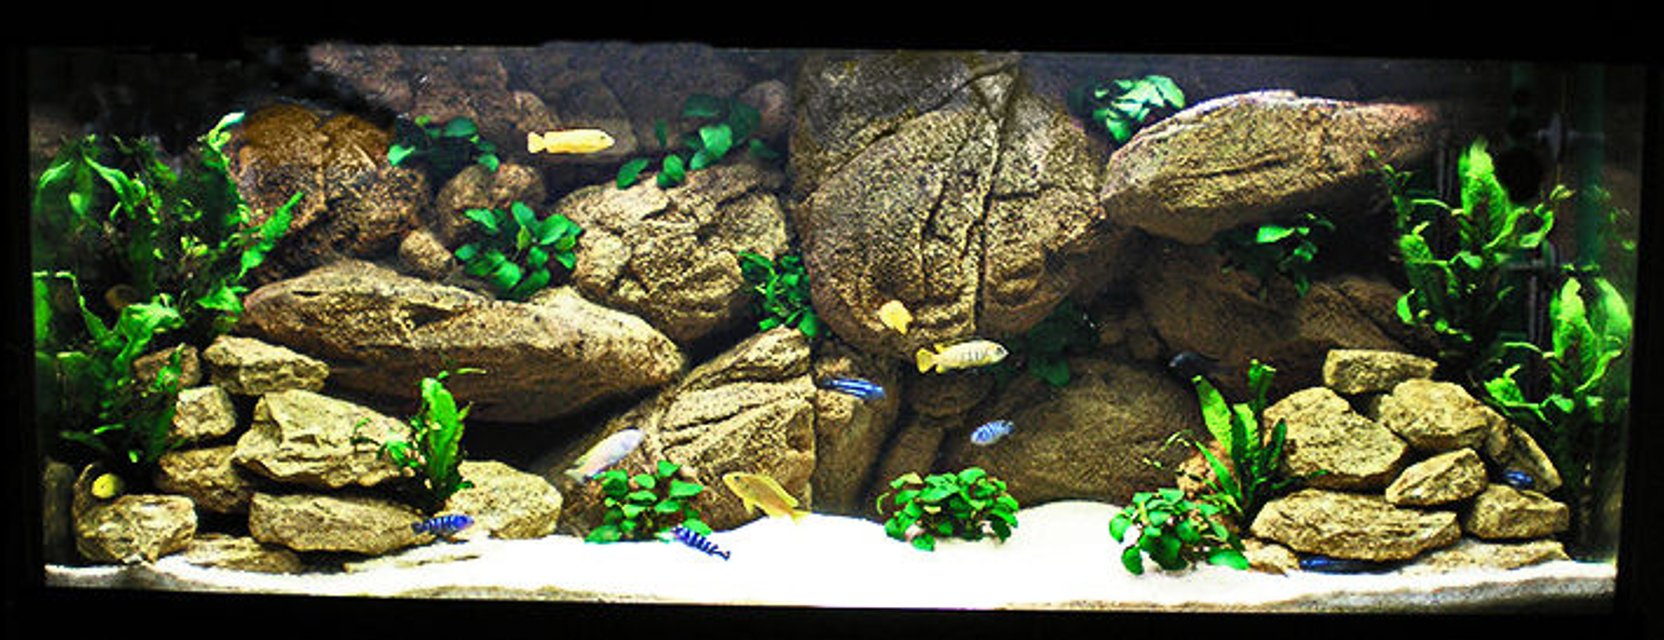 Rated #3: 63 Gallons Freshwater Fish Tank - My Mbuna Tank